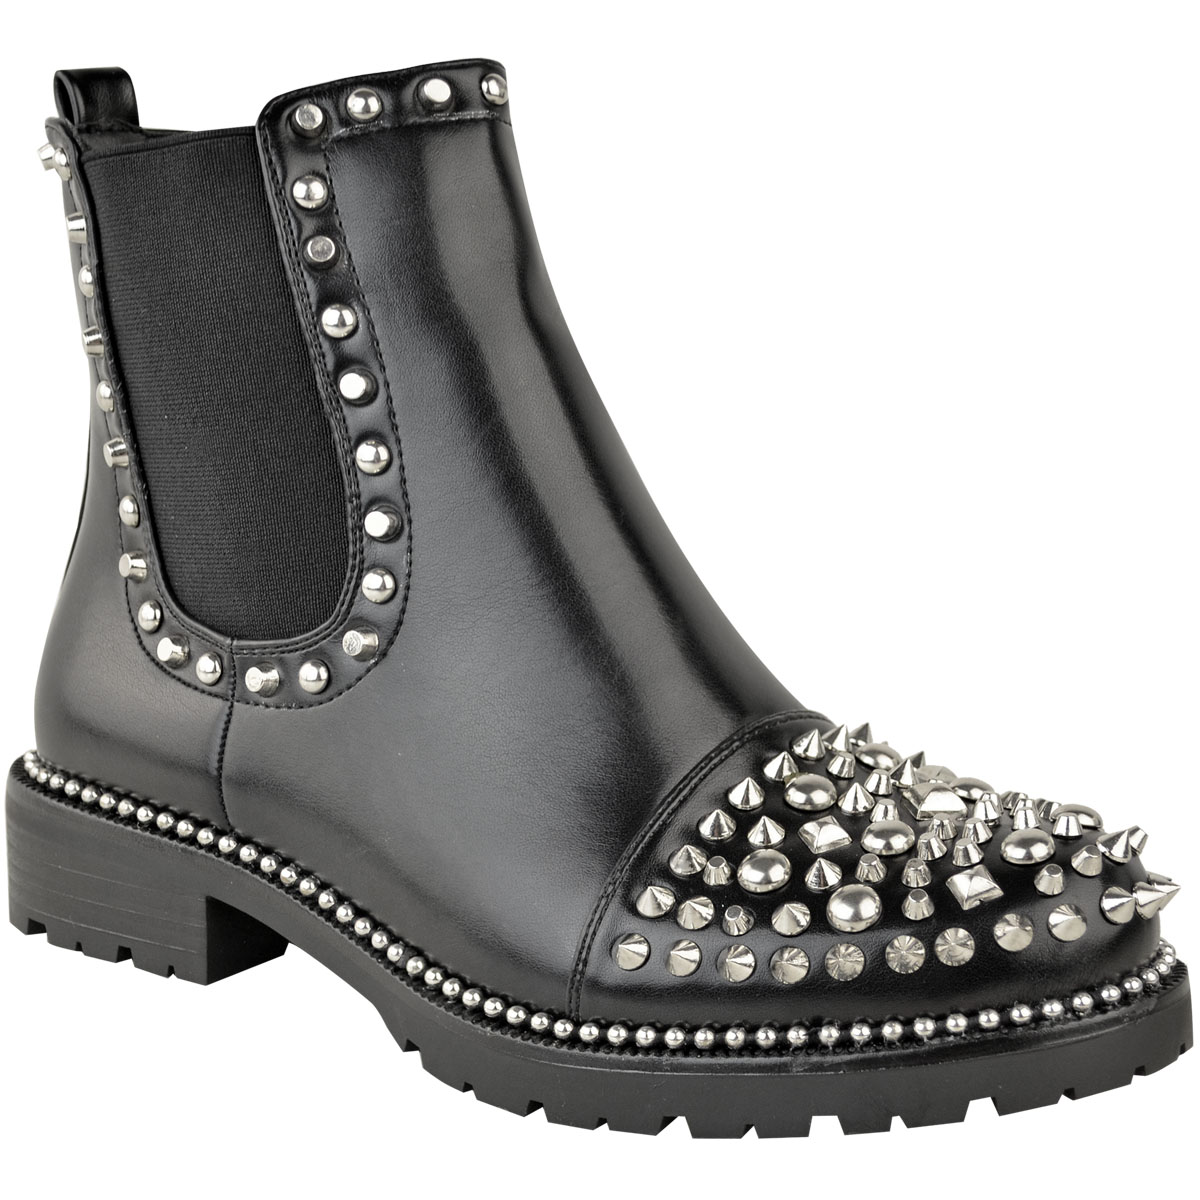 Womens Studded Ankle Boots Stud Toe Low